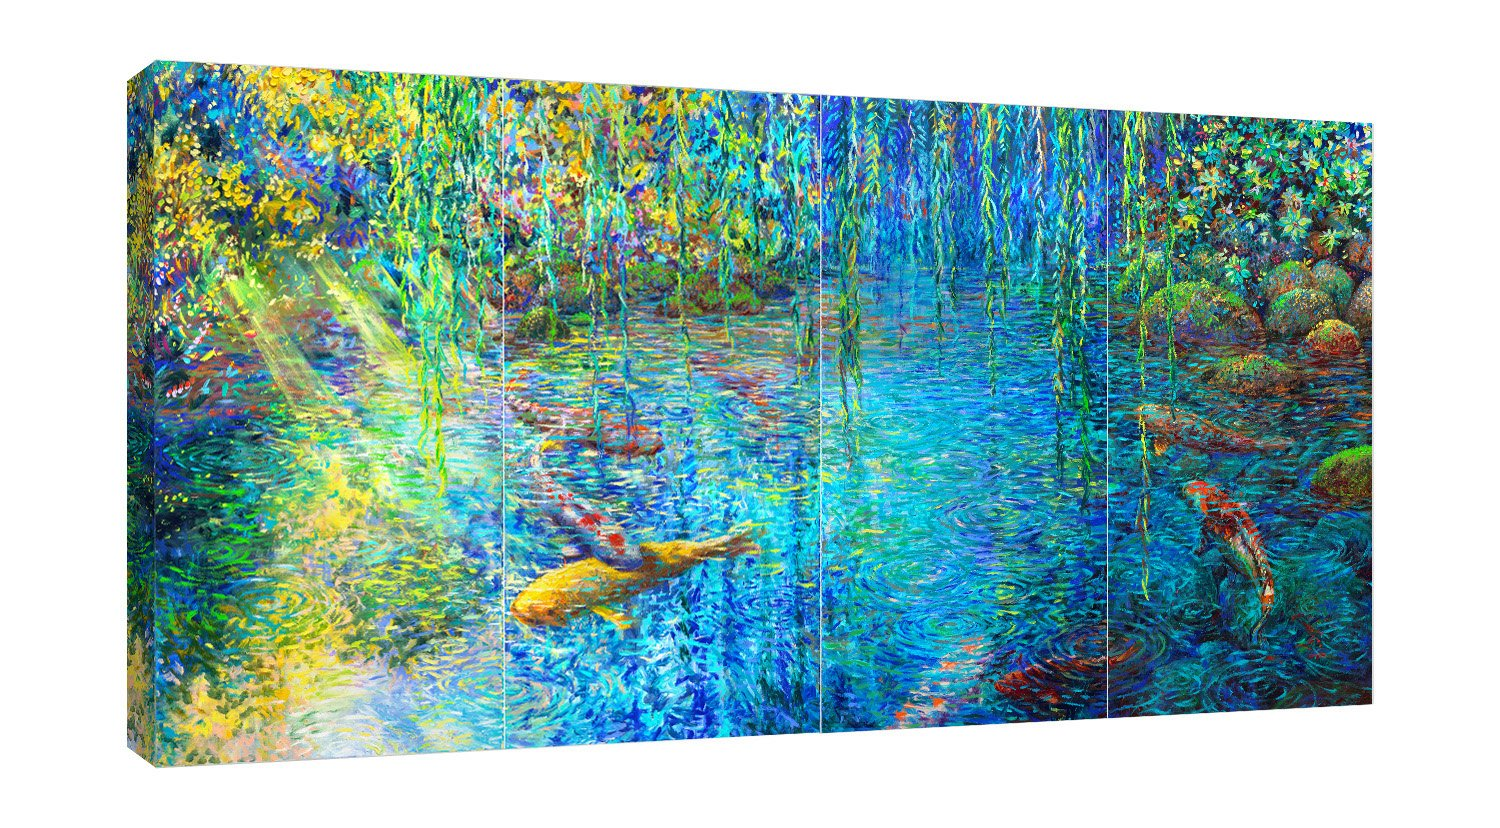 Iris-Scott, impressionism, coastal, finger paint, fish, Impressionism, Iris-Scott, lagoon, Landscape & Nature, Modern & Contemporary, nature, surrealism, water, multi-panel